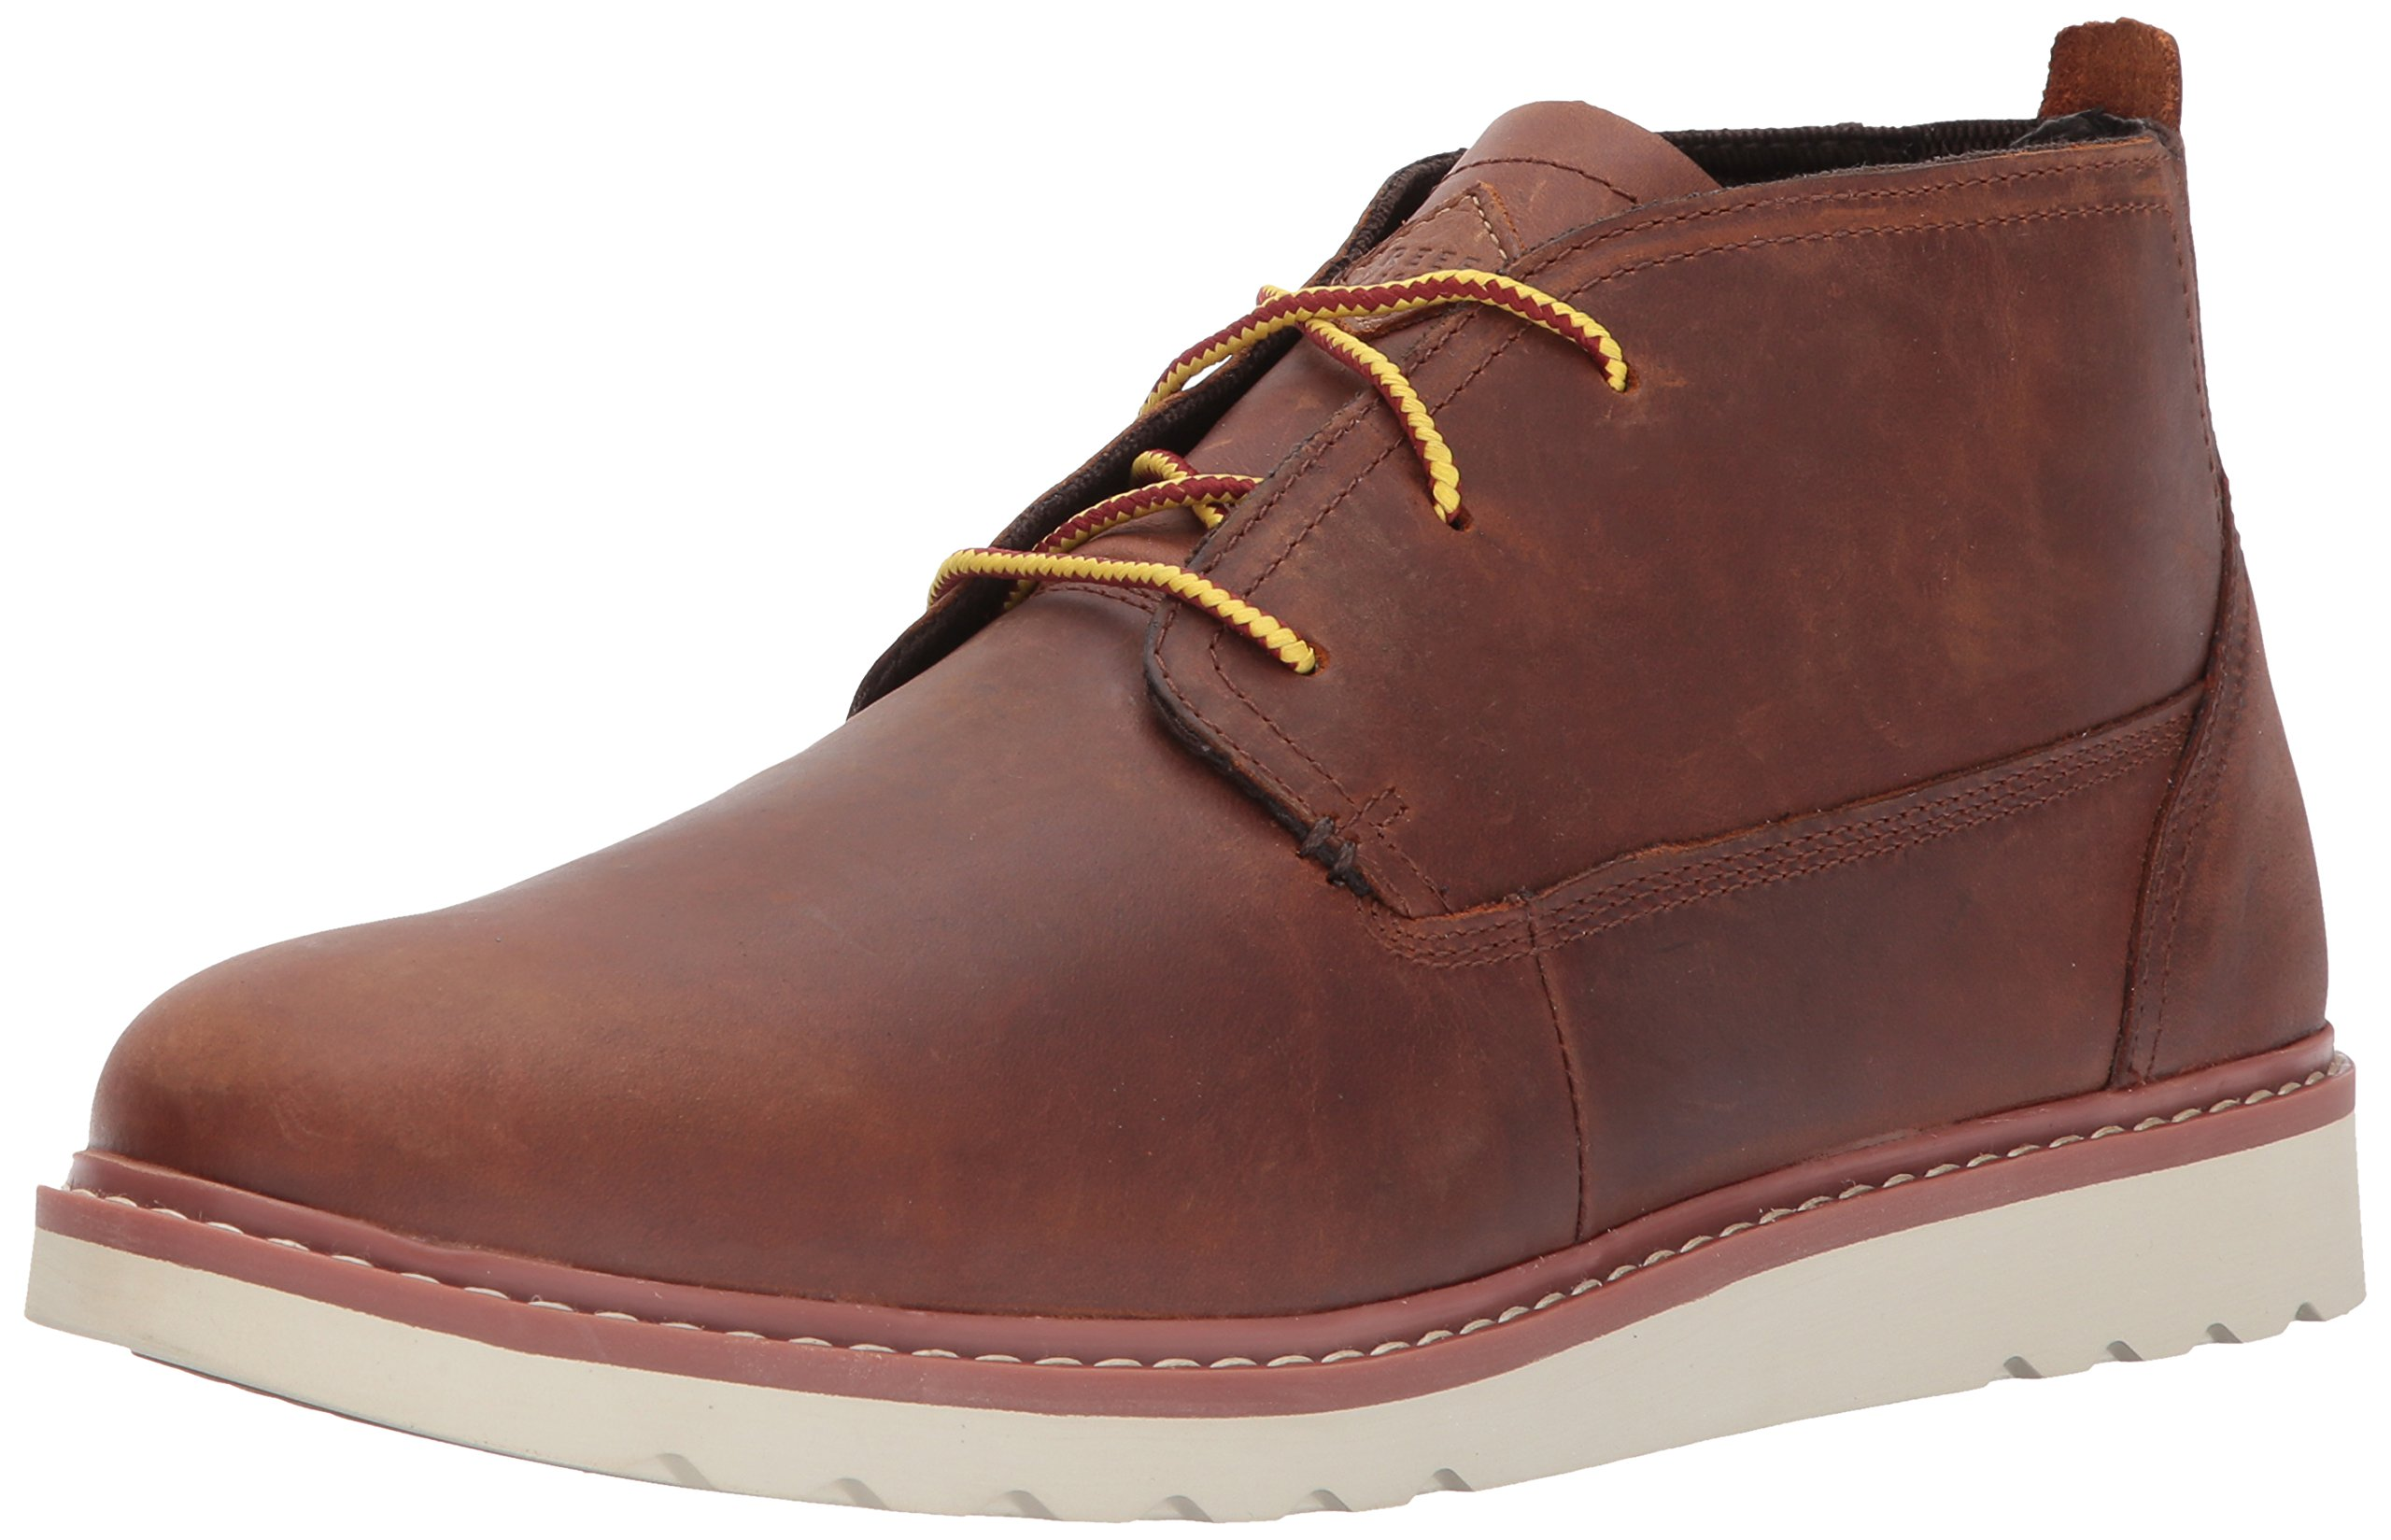 Reef Men's Voyage Le Chukka Boot, Brown, 10 M US